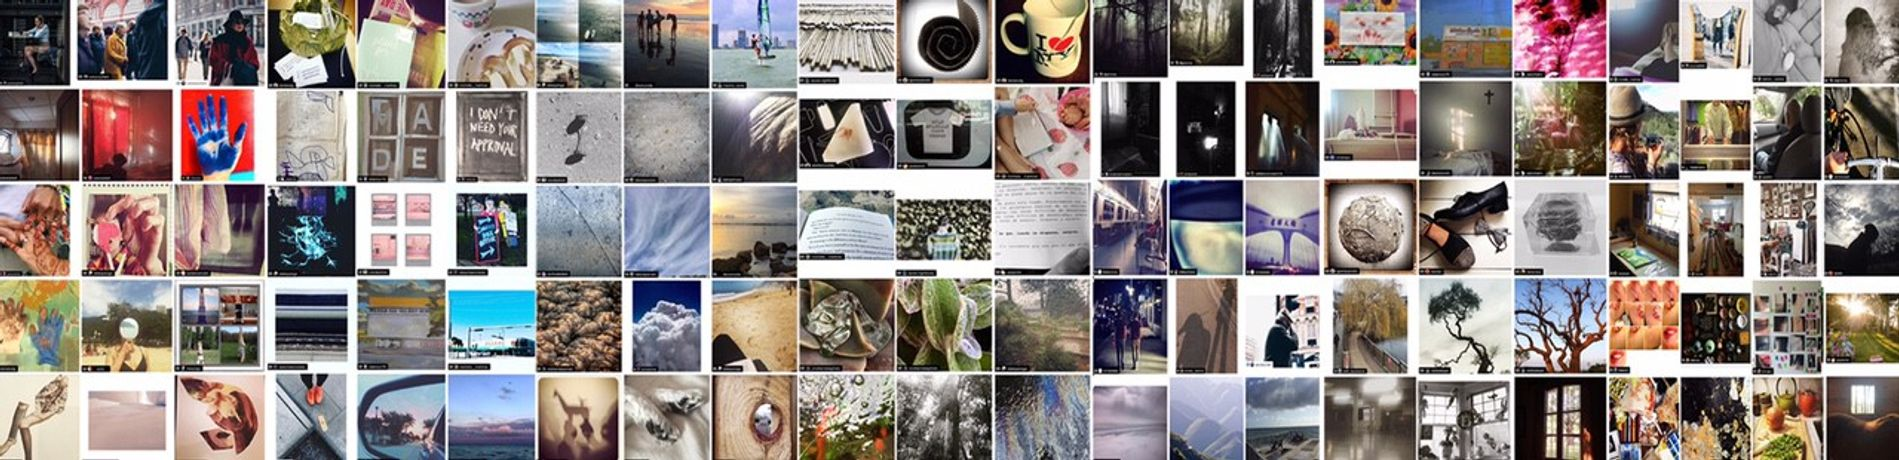 #9TOPICS _ An Instagram-Based Project Presented by TRIAD: Image 0